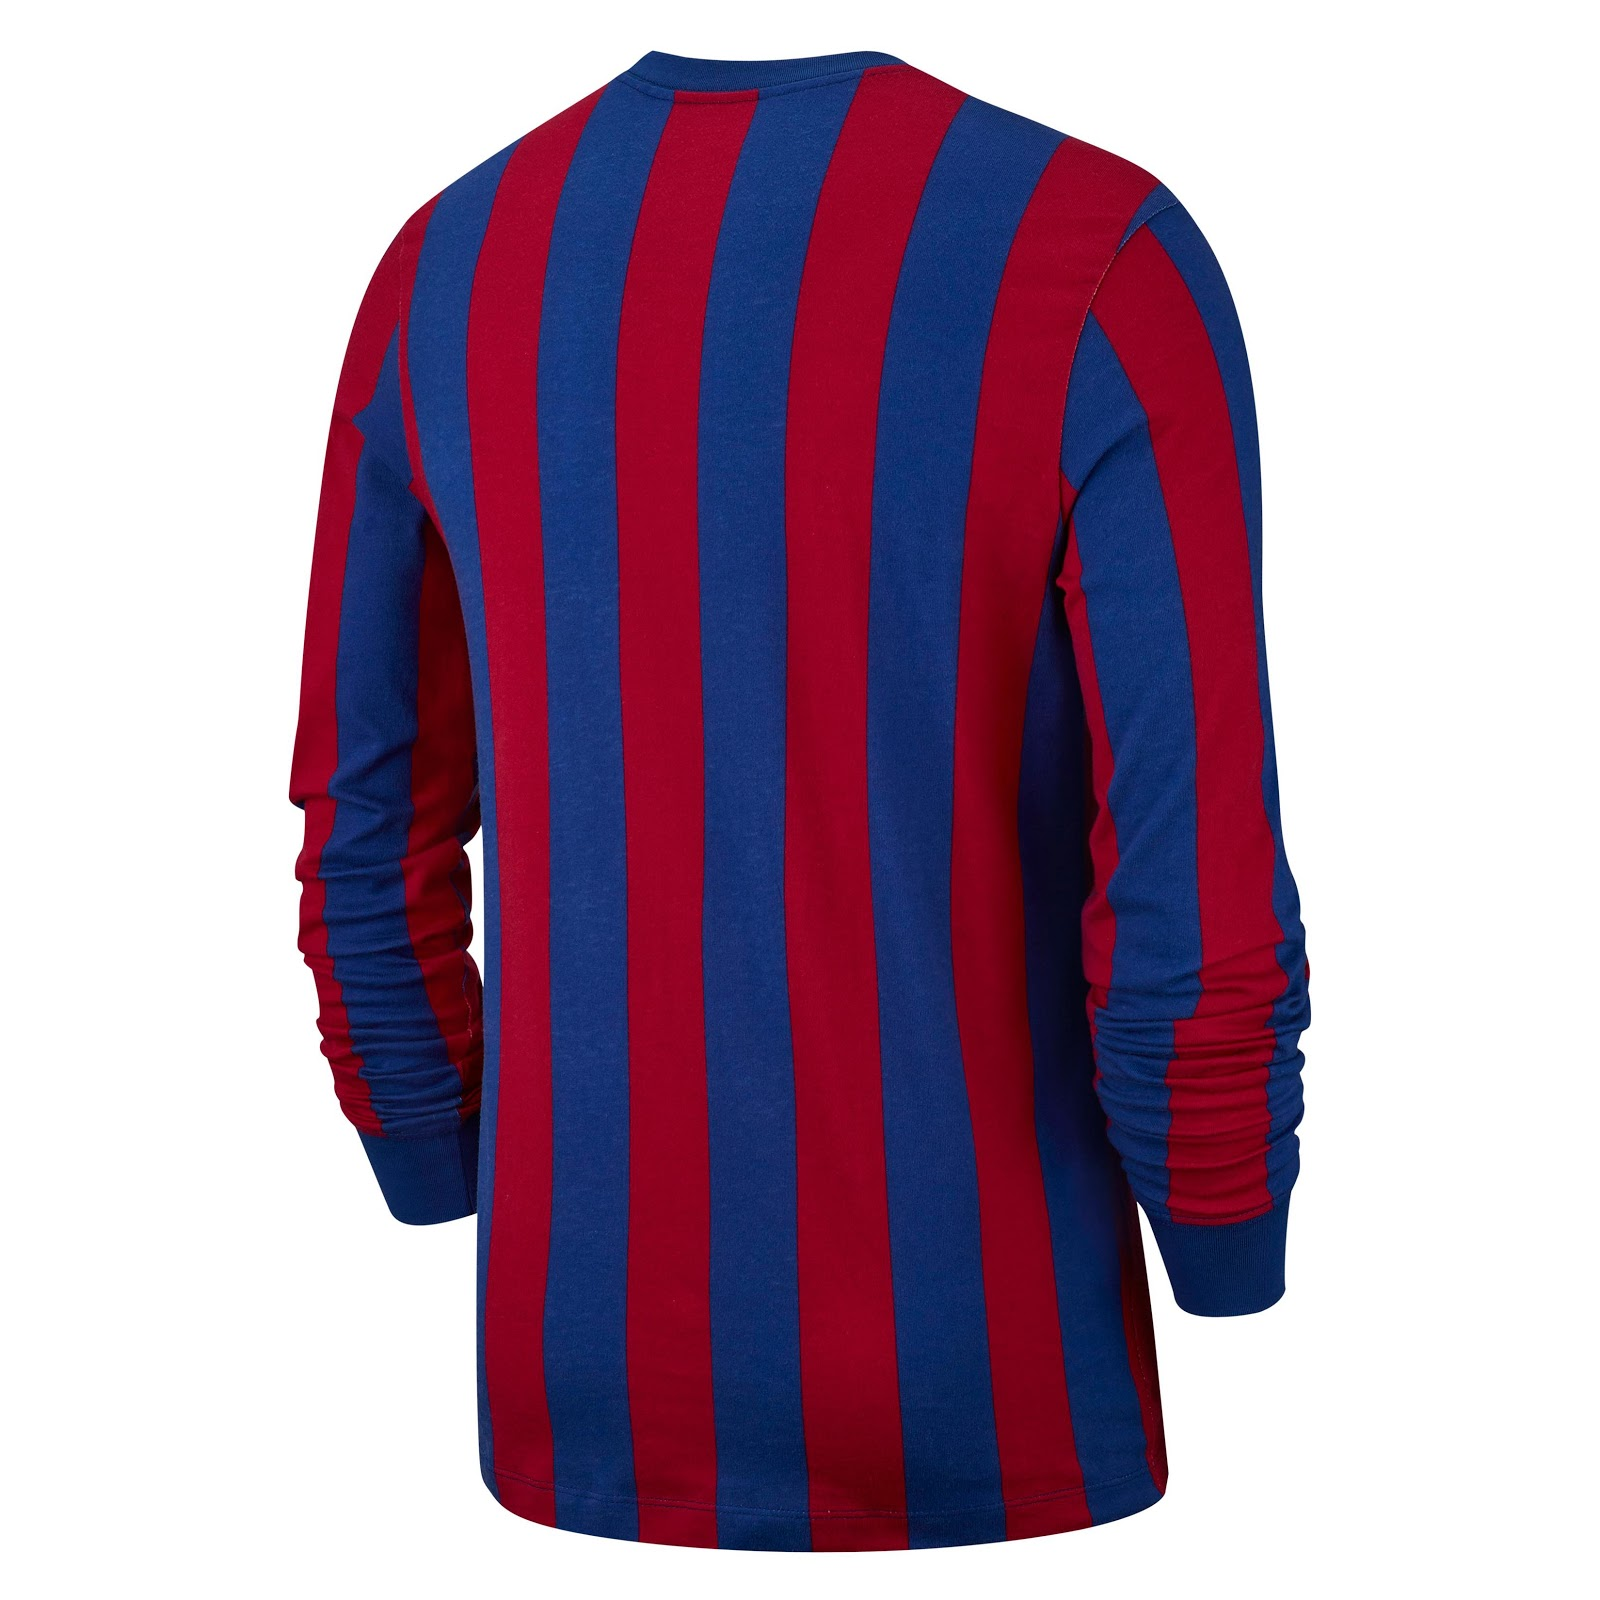 0e4925f68c53 The Nike FC Barcelona Long Sleeve Tee Retro features the club s traditional  Blaugrana stripes. It comes with the Swoosh on the left chest area and an  ...